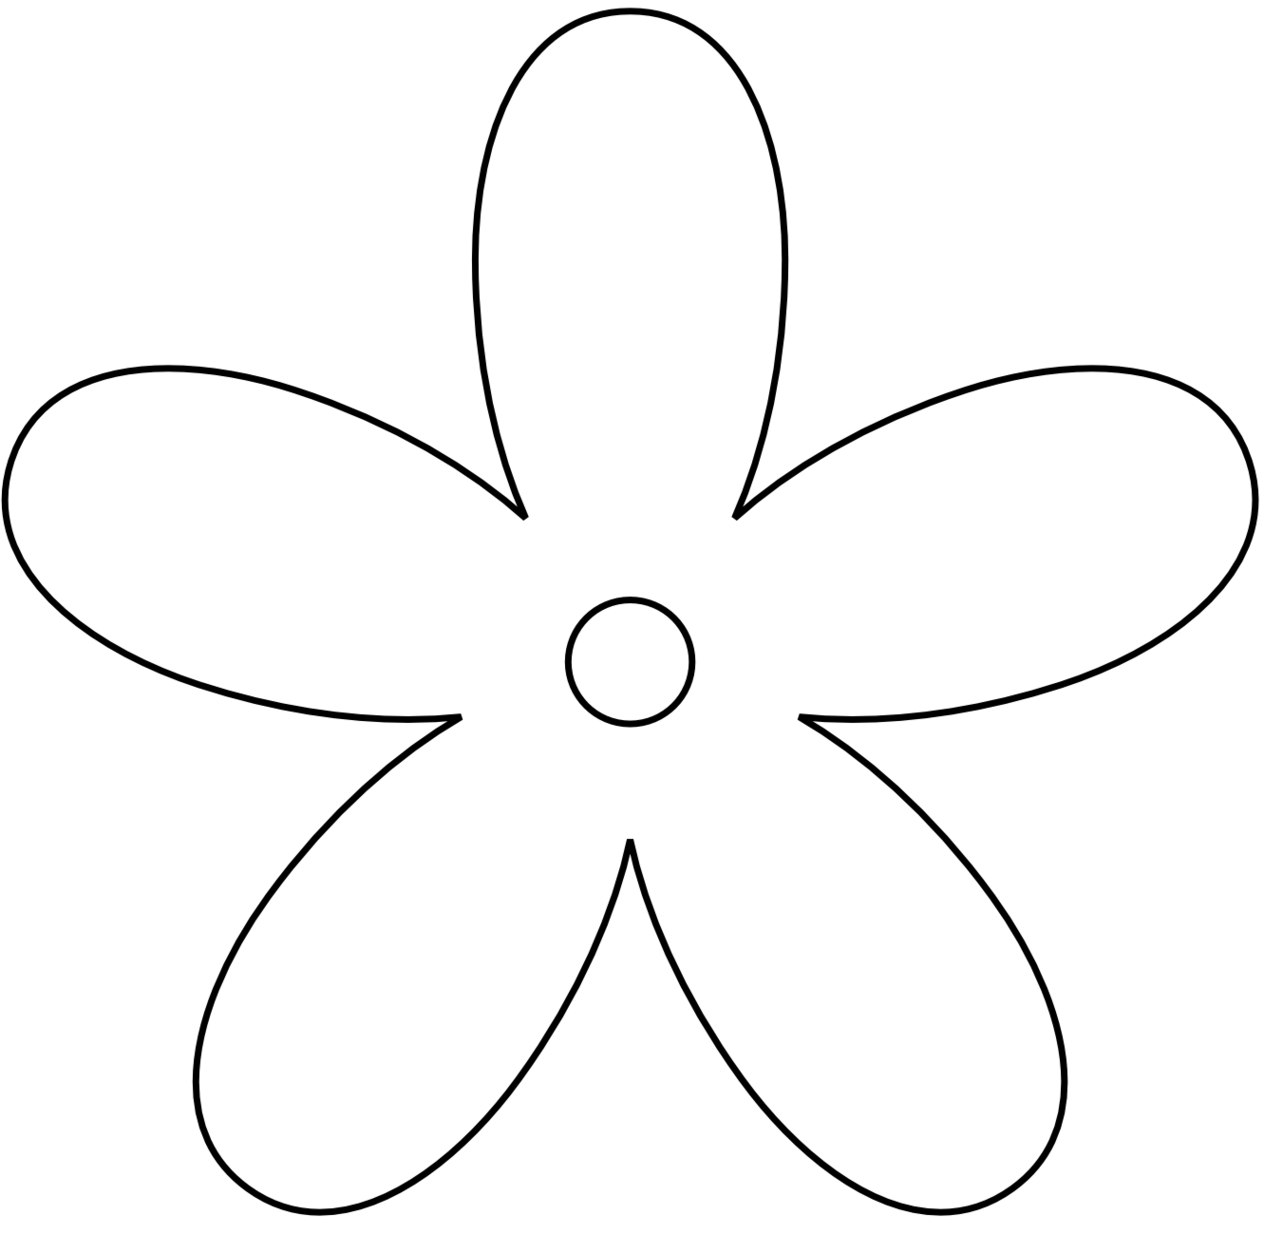 White Flower clipart Use black flower Flower white